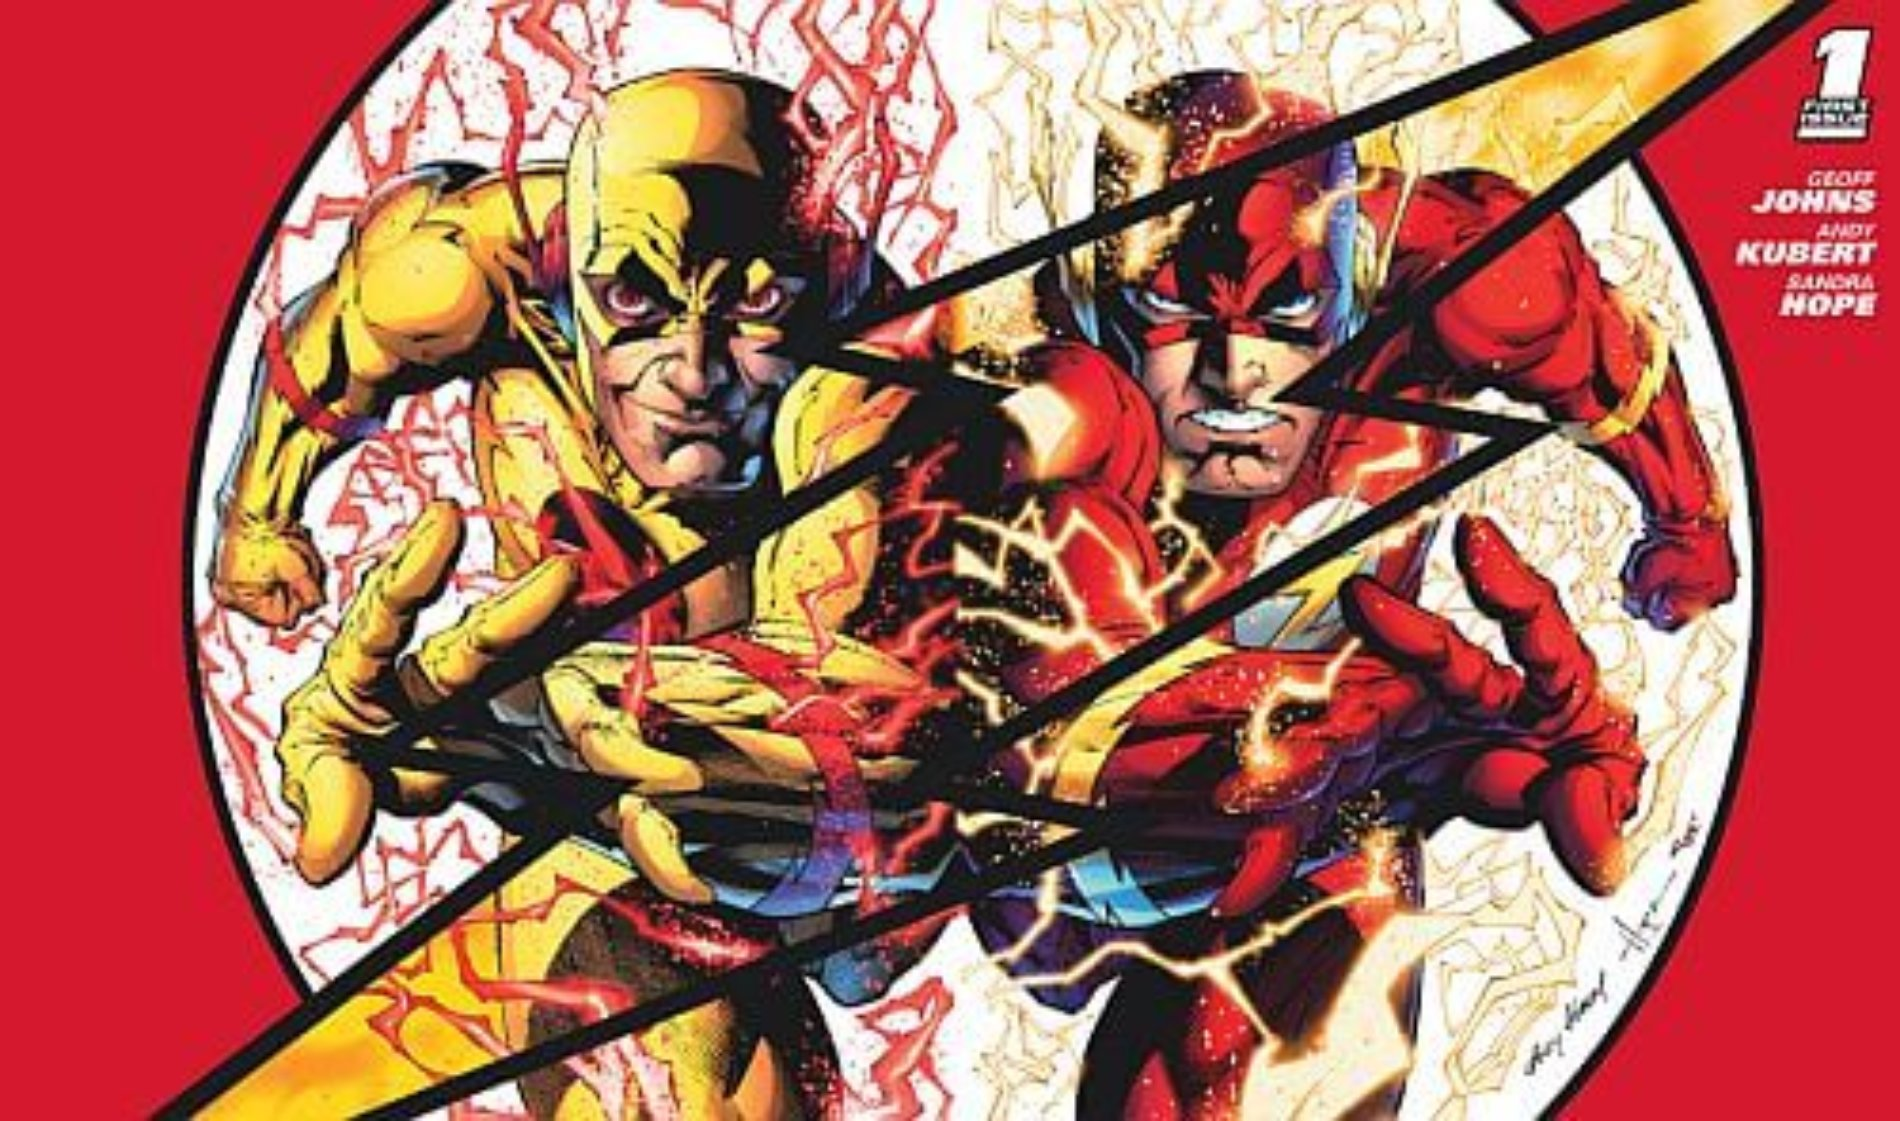 Warner Bros mas cerca de contratar a un director para la película de 'The Flash'